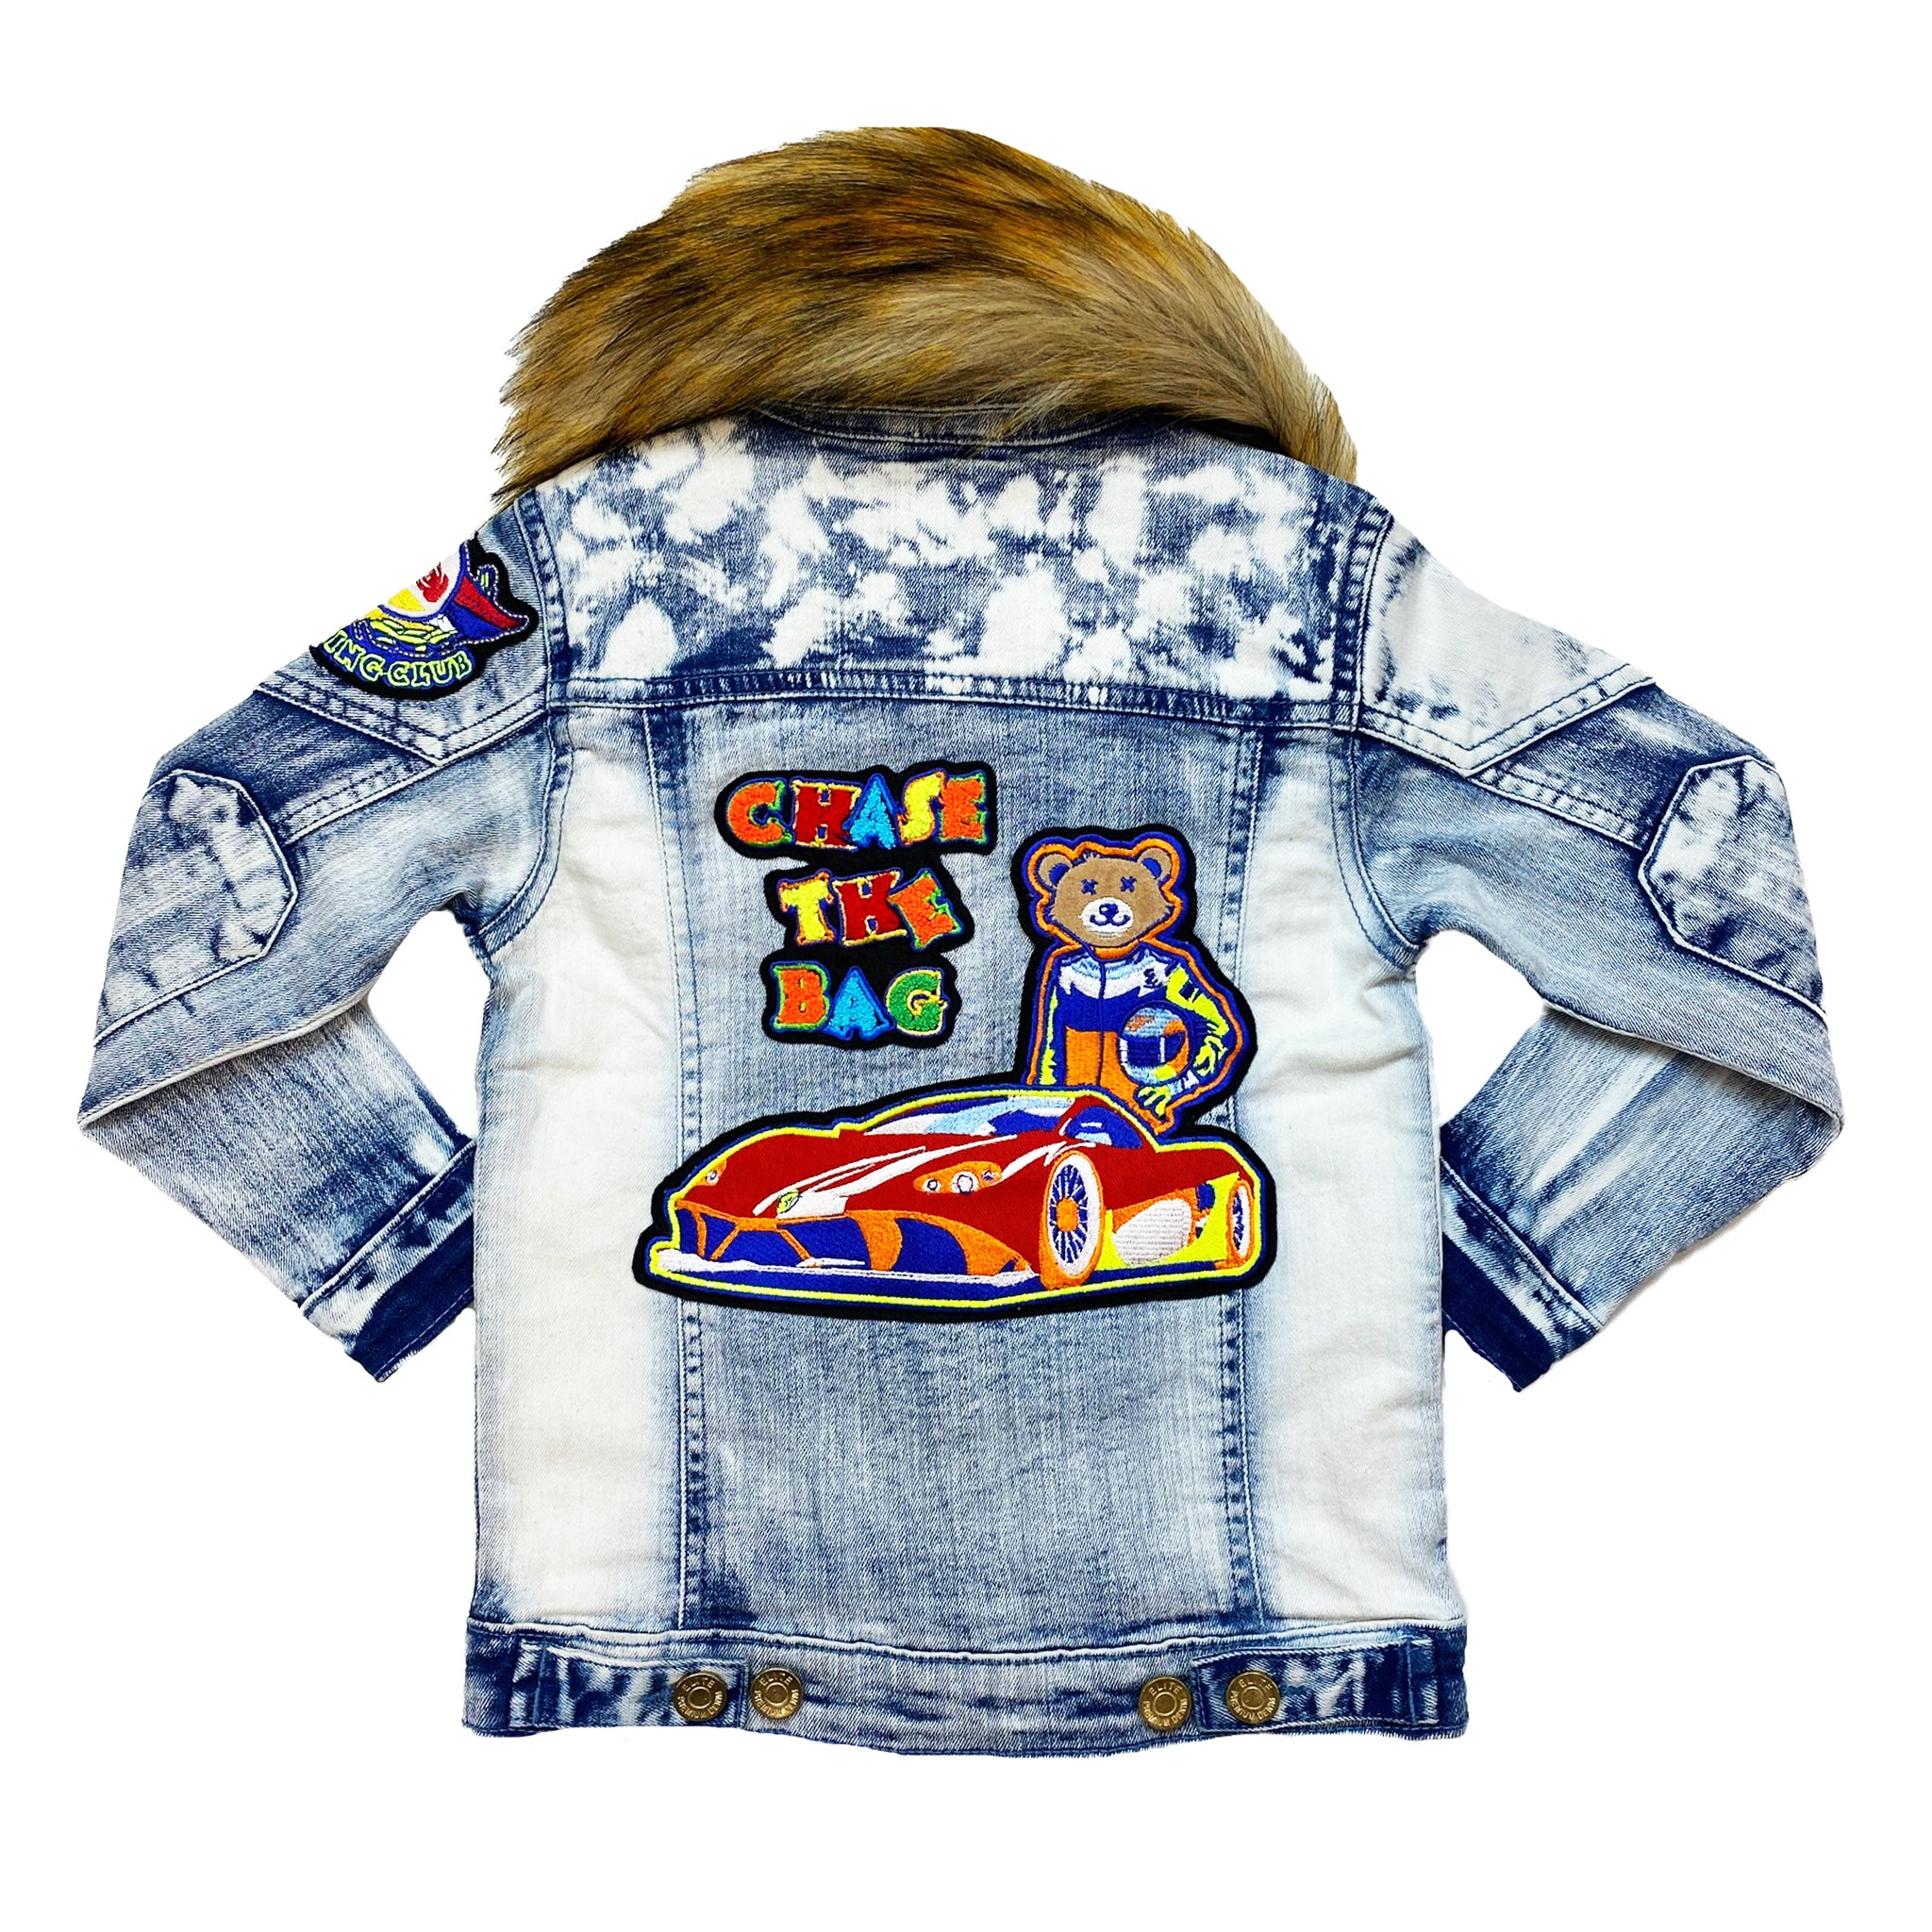 Kids Roadster Premium Denim Jacket Set - Elite Premium Denim